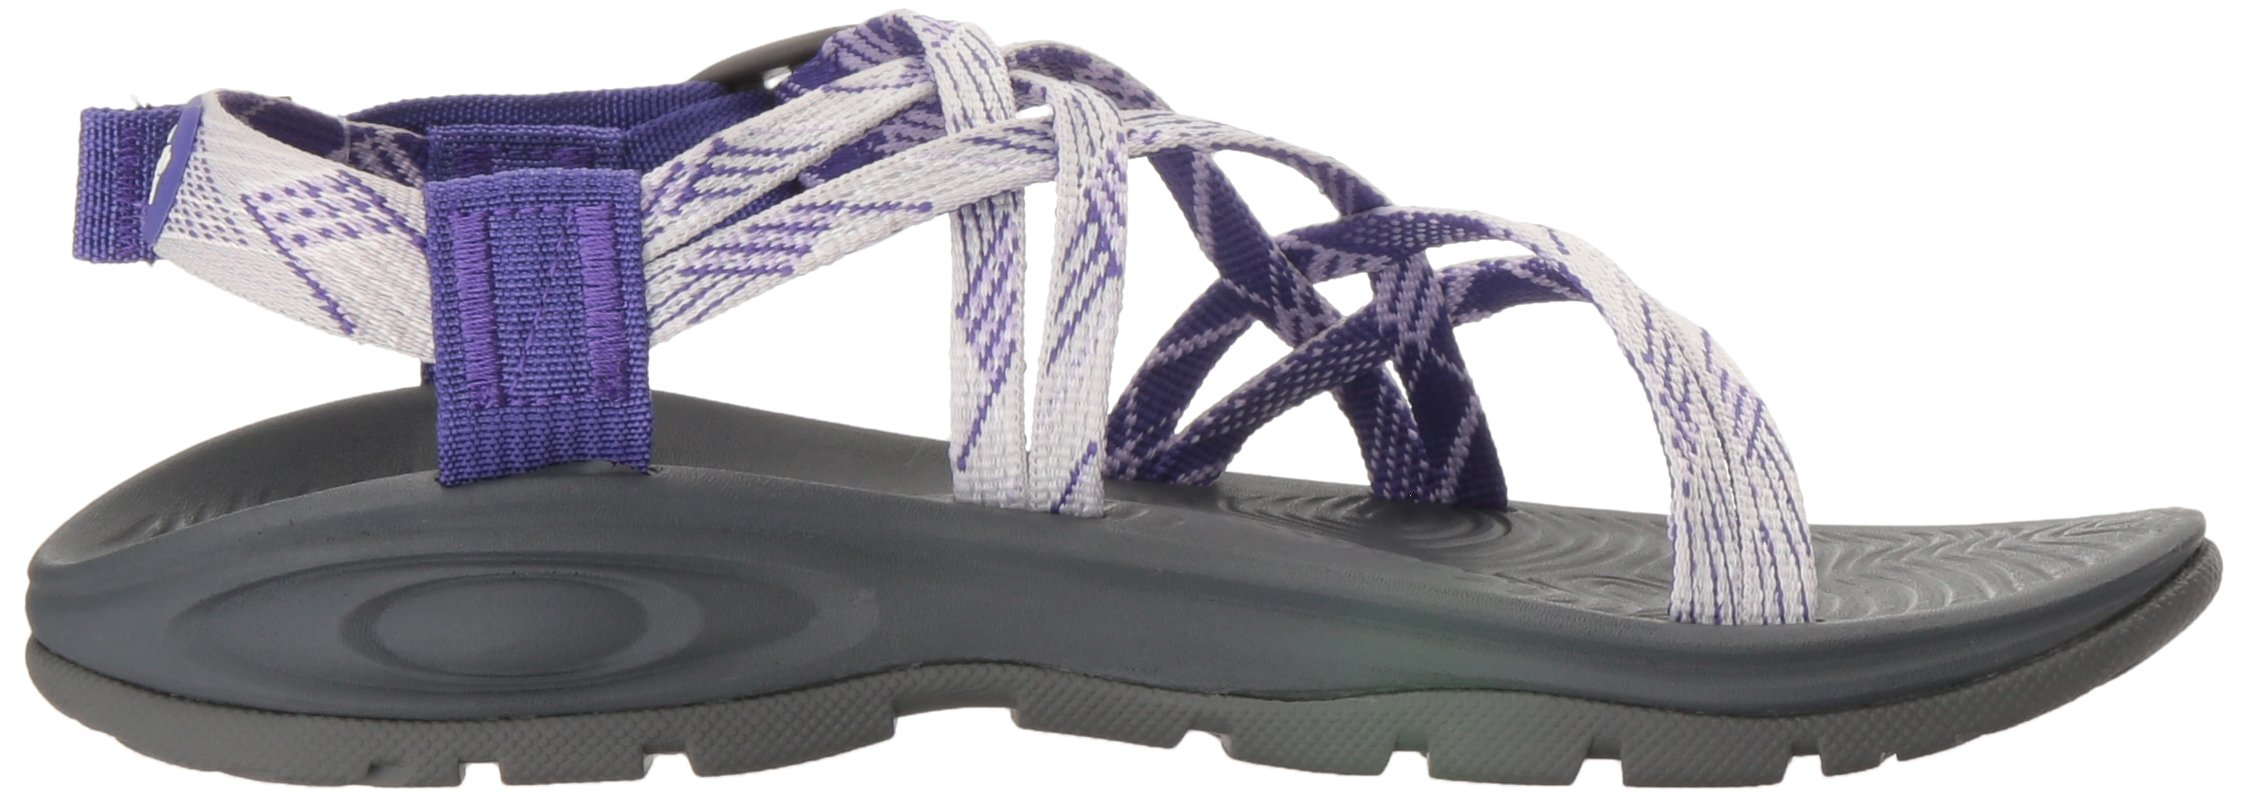 Chaco Women's Zvolv X Athletic Sandal, Lavender Liberty, 6 M US by Chaco (Image #7)